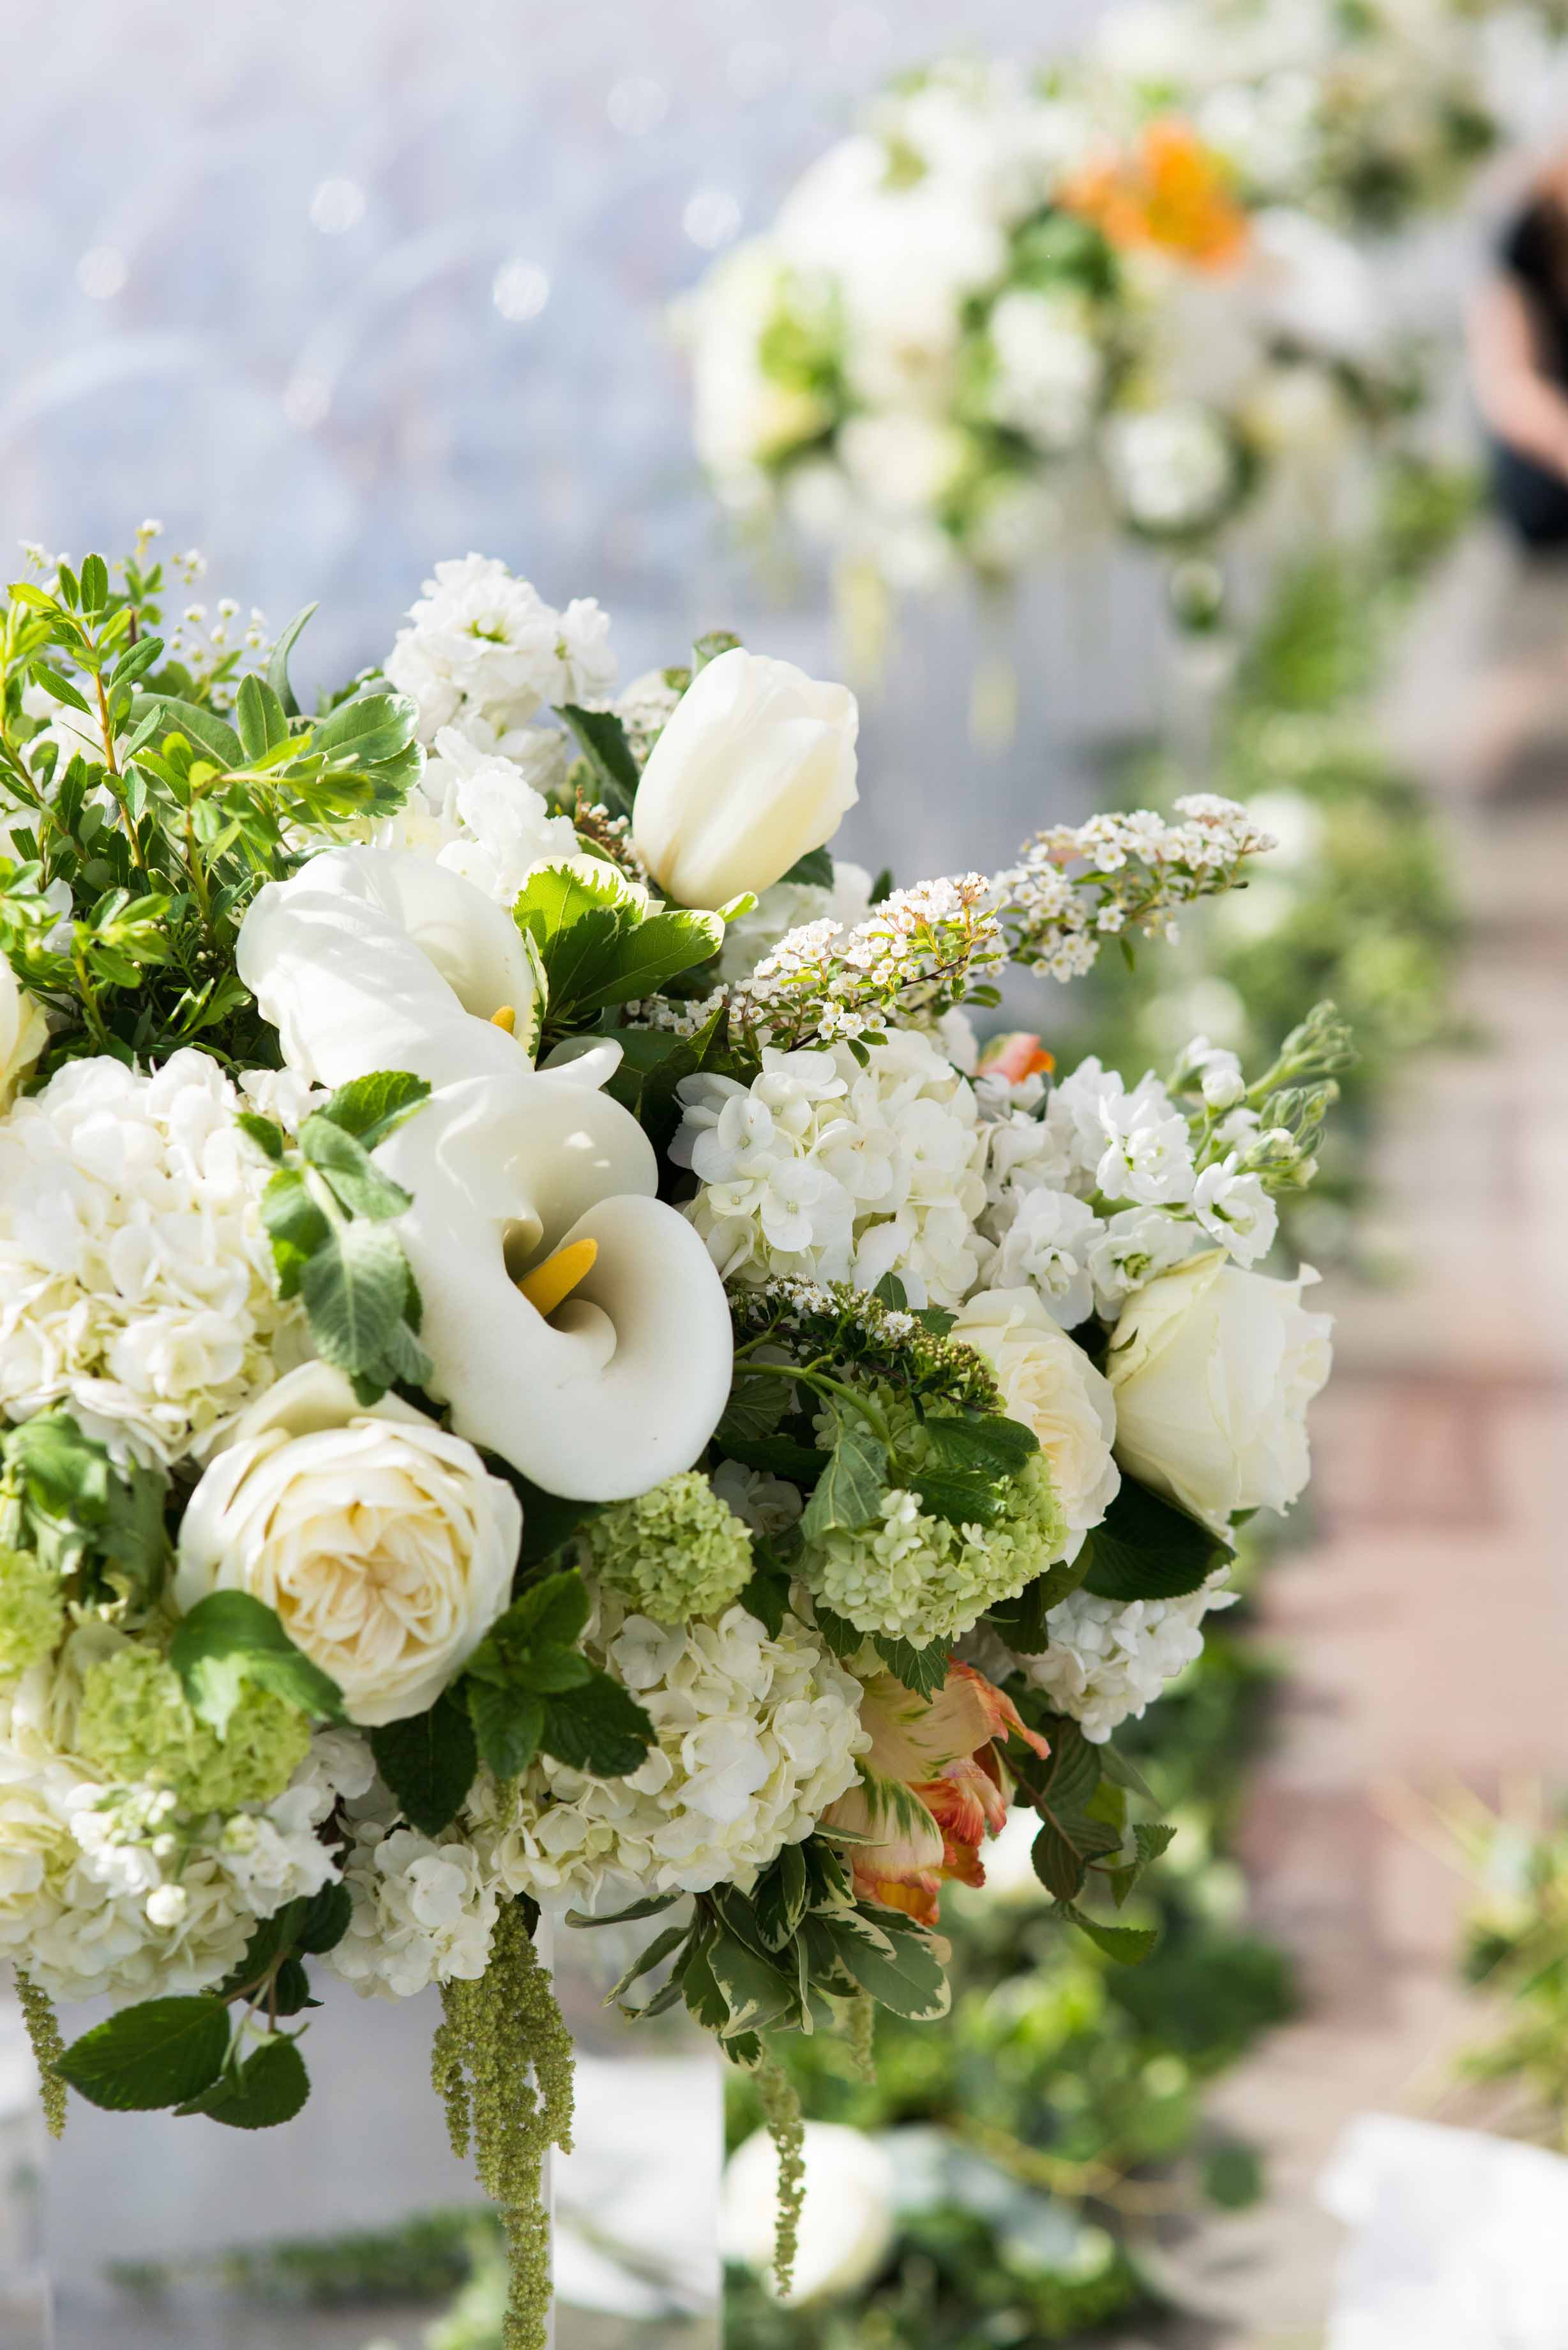 Beautiful white and orange floral design with large white calla lilies, white roses, viburnum, blooming spirea, and parrot tulips